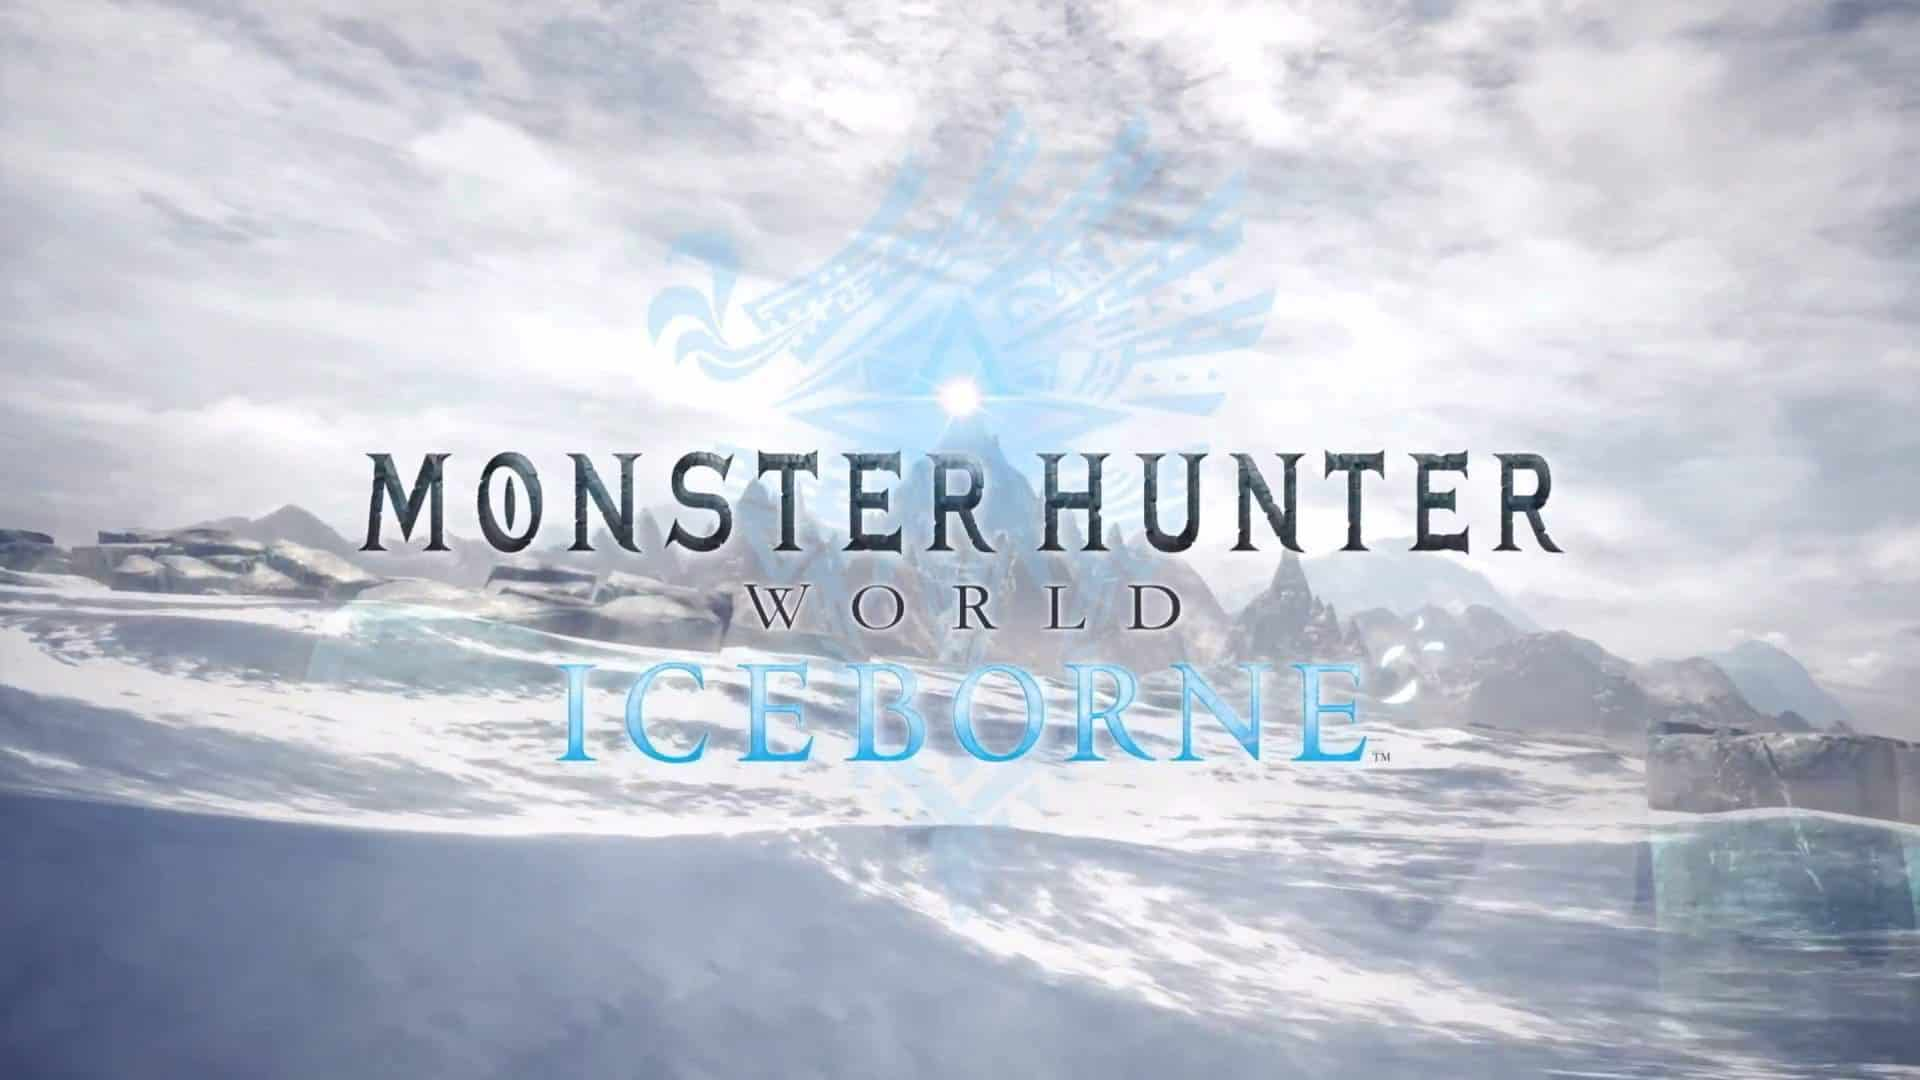 Brand New Monster Hunter World: Iceborne Trailer Introduces Frosty New Storyline